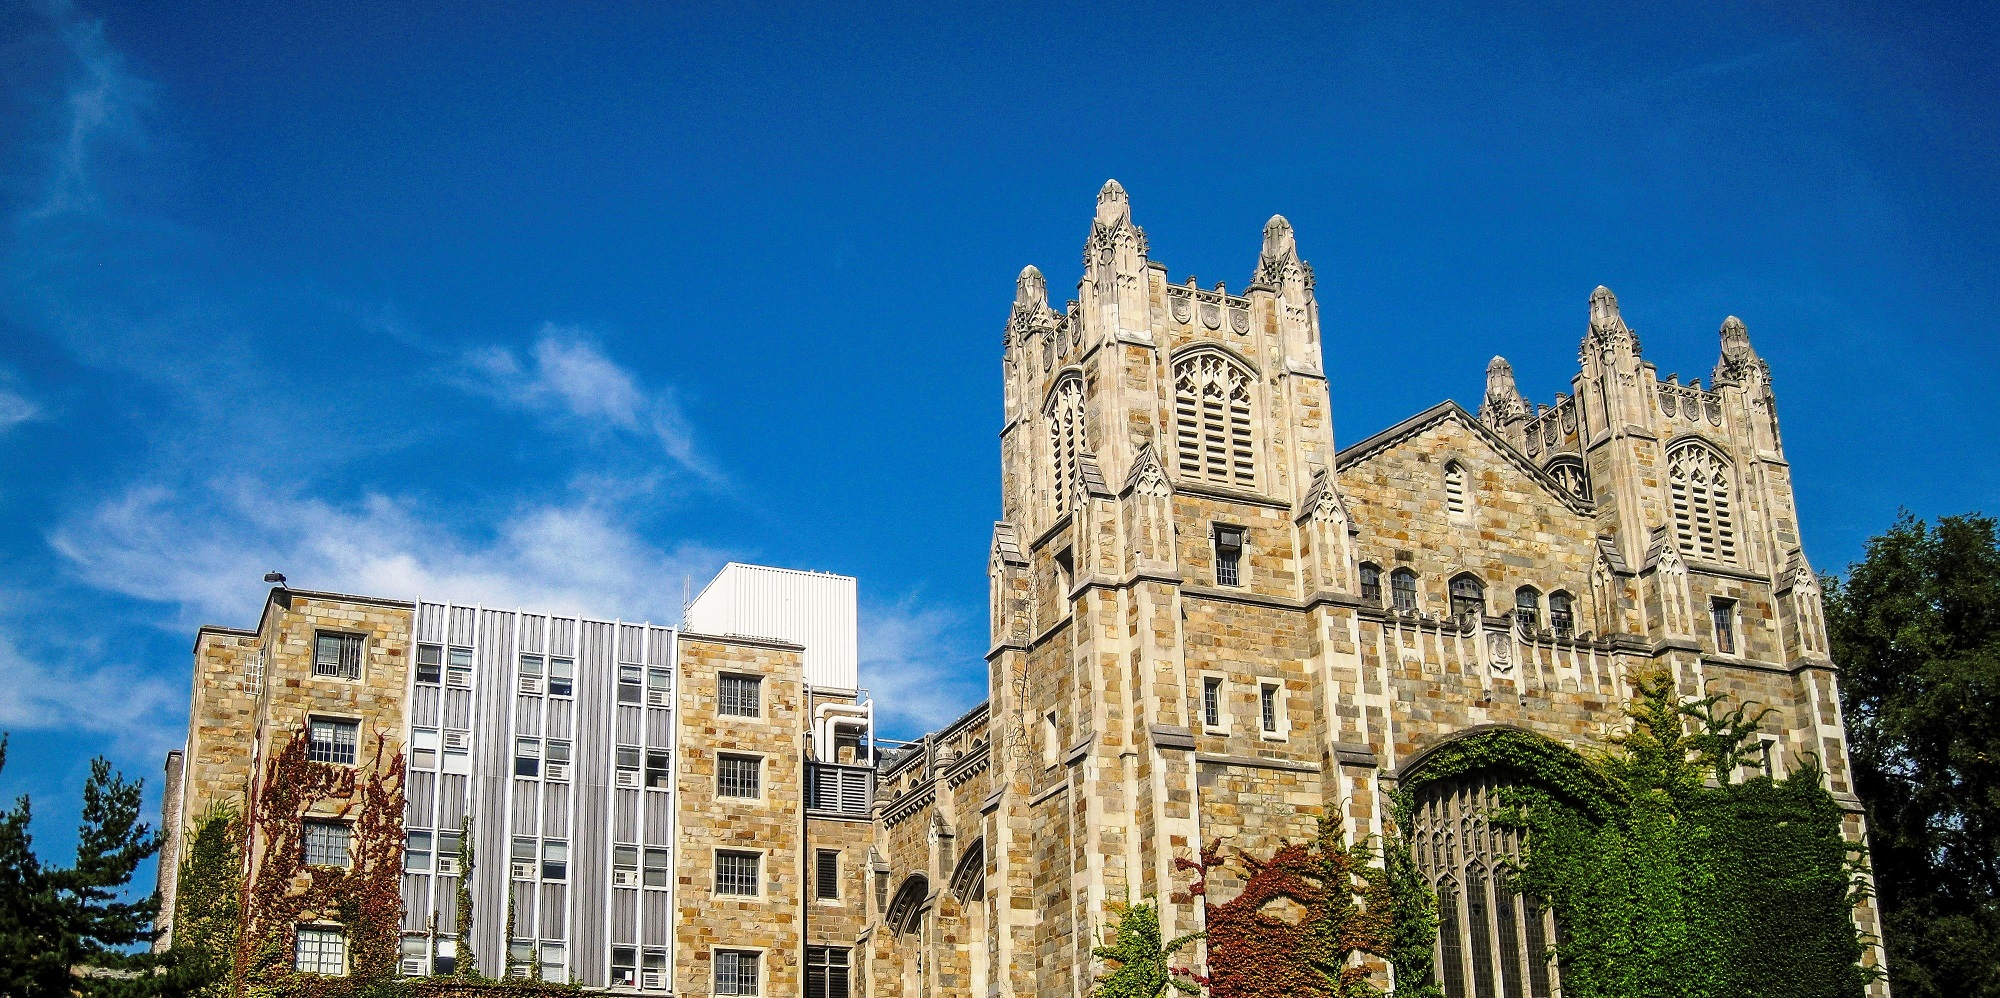 The Finest for Your Education: The Best College in Every US State. Part 3/5